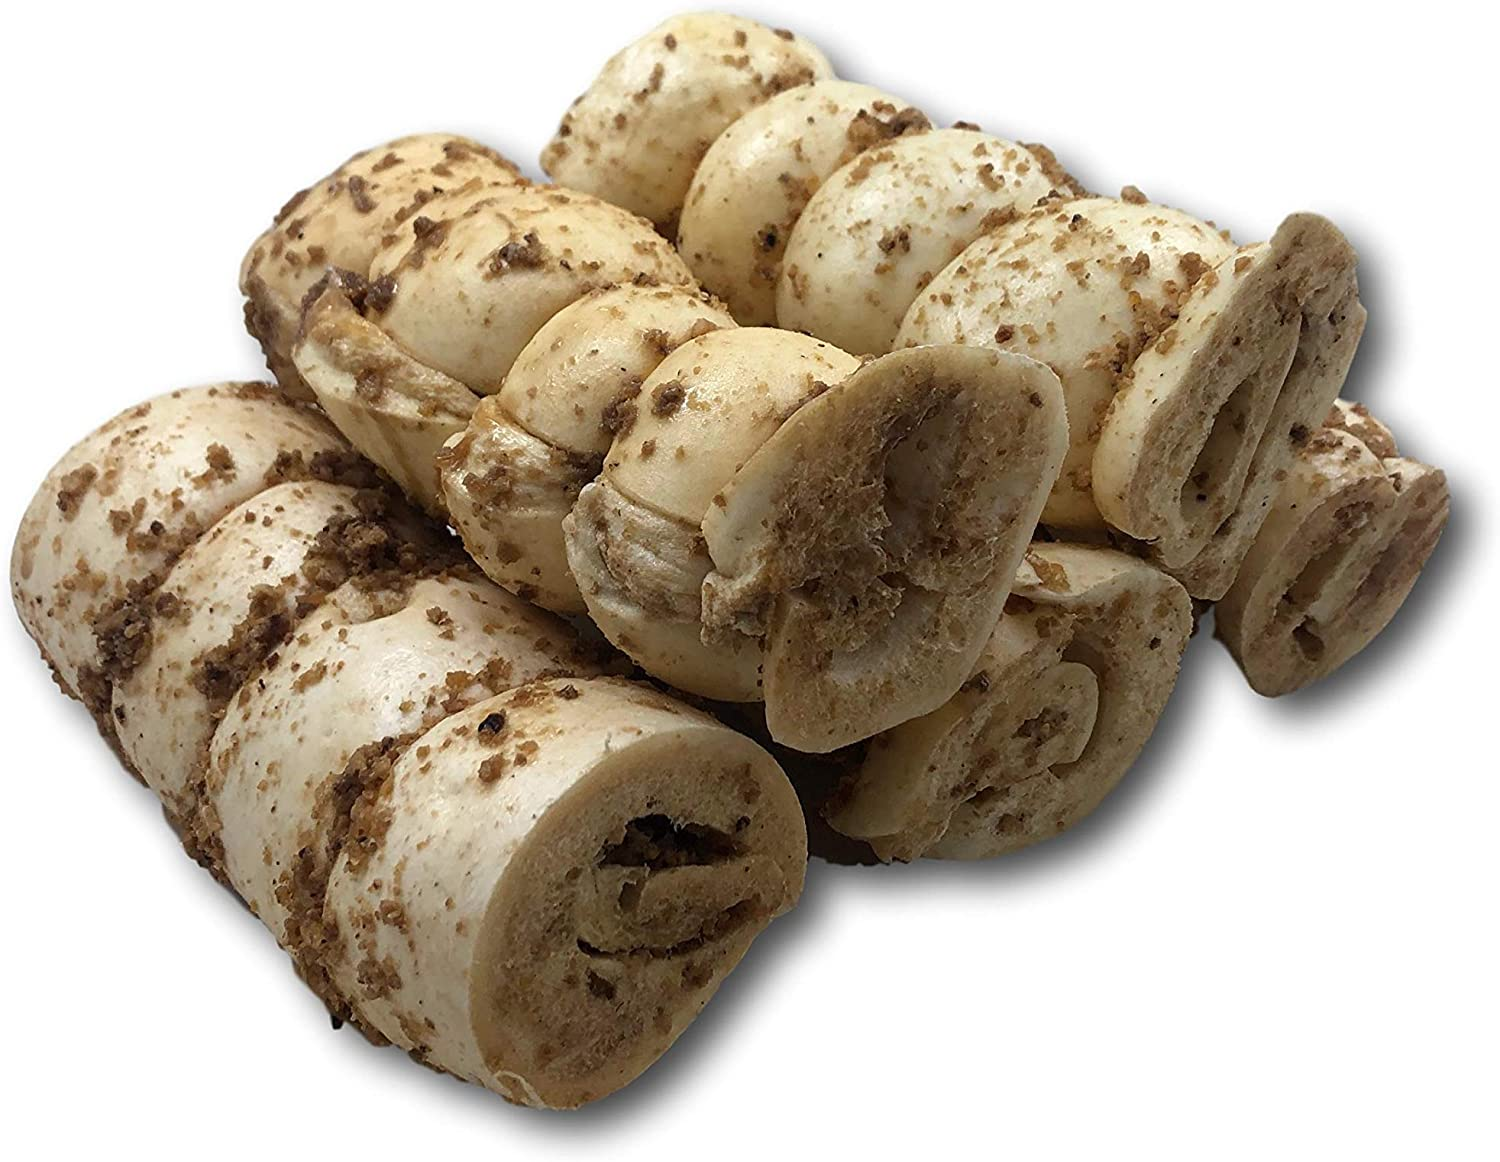 Top Dog Chews Buffalo Beef Cheek Rolls with Bully Dust Sprinkles - 5 Pack from